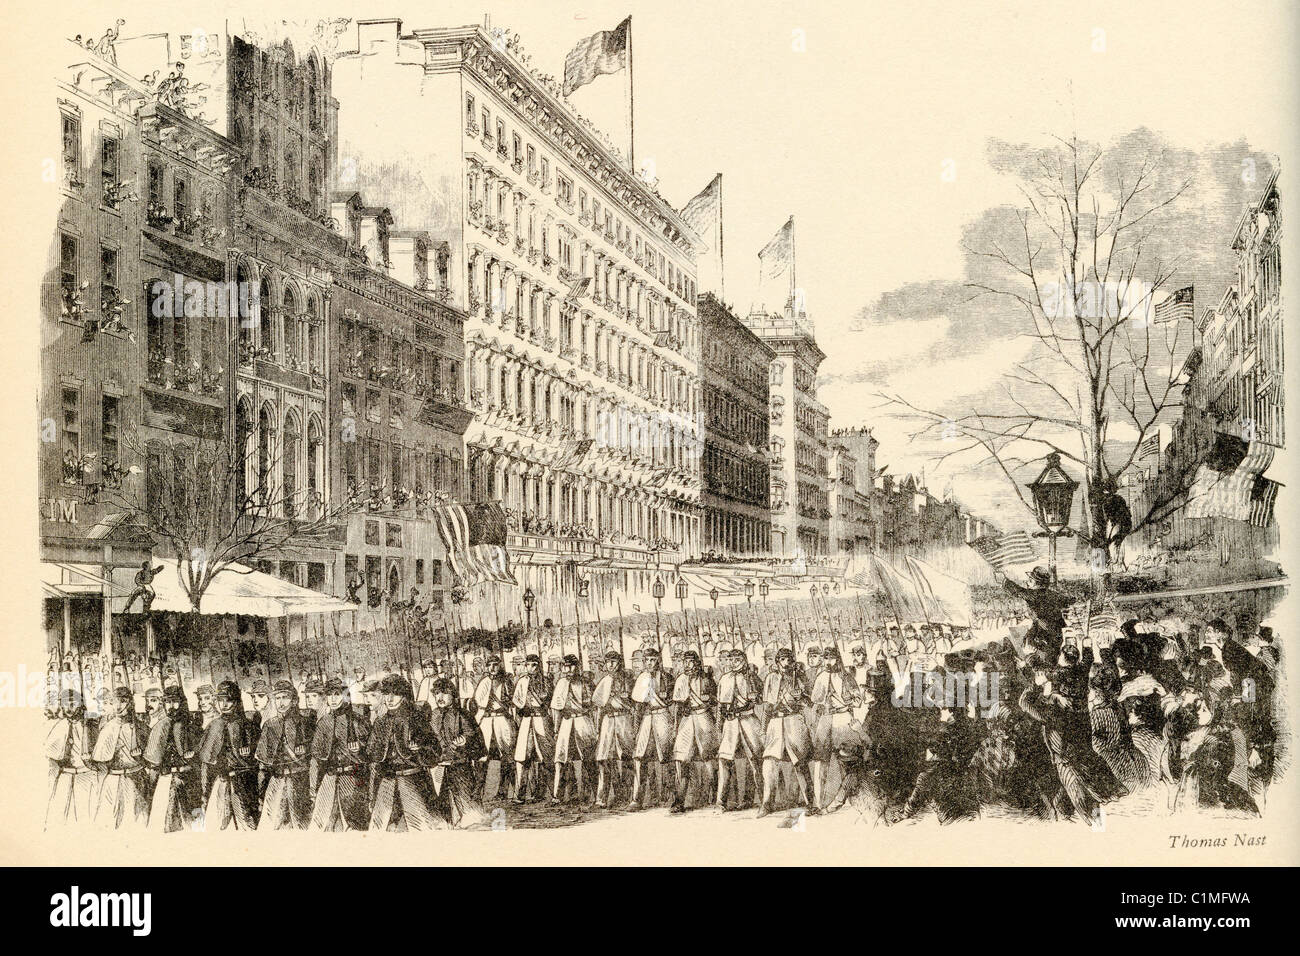 Old lithograph of National Guards in New York, 1865, American Civil War - Stock Image